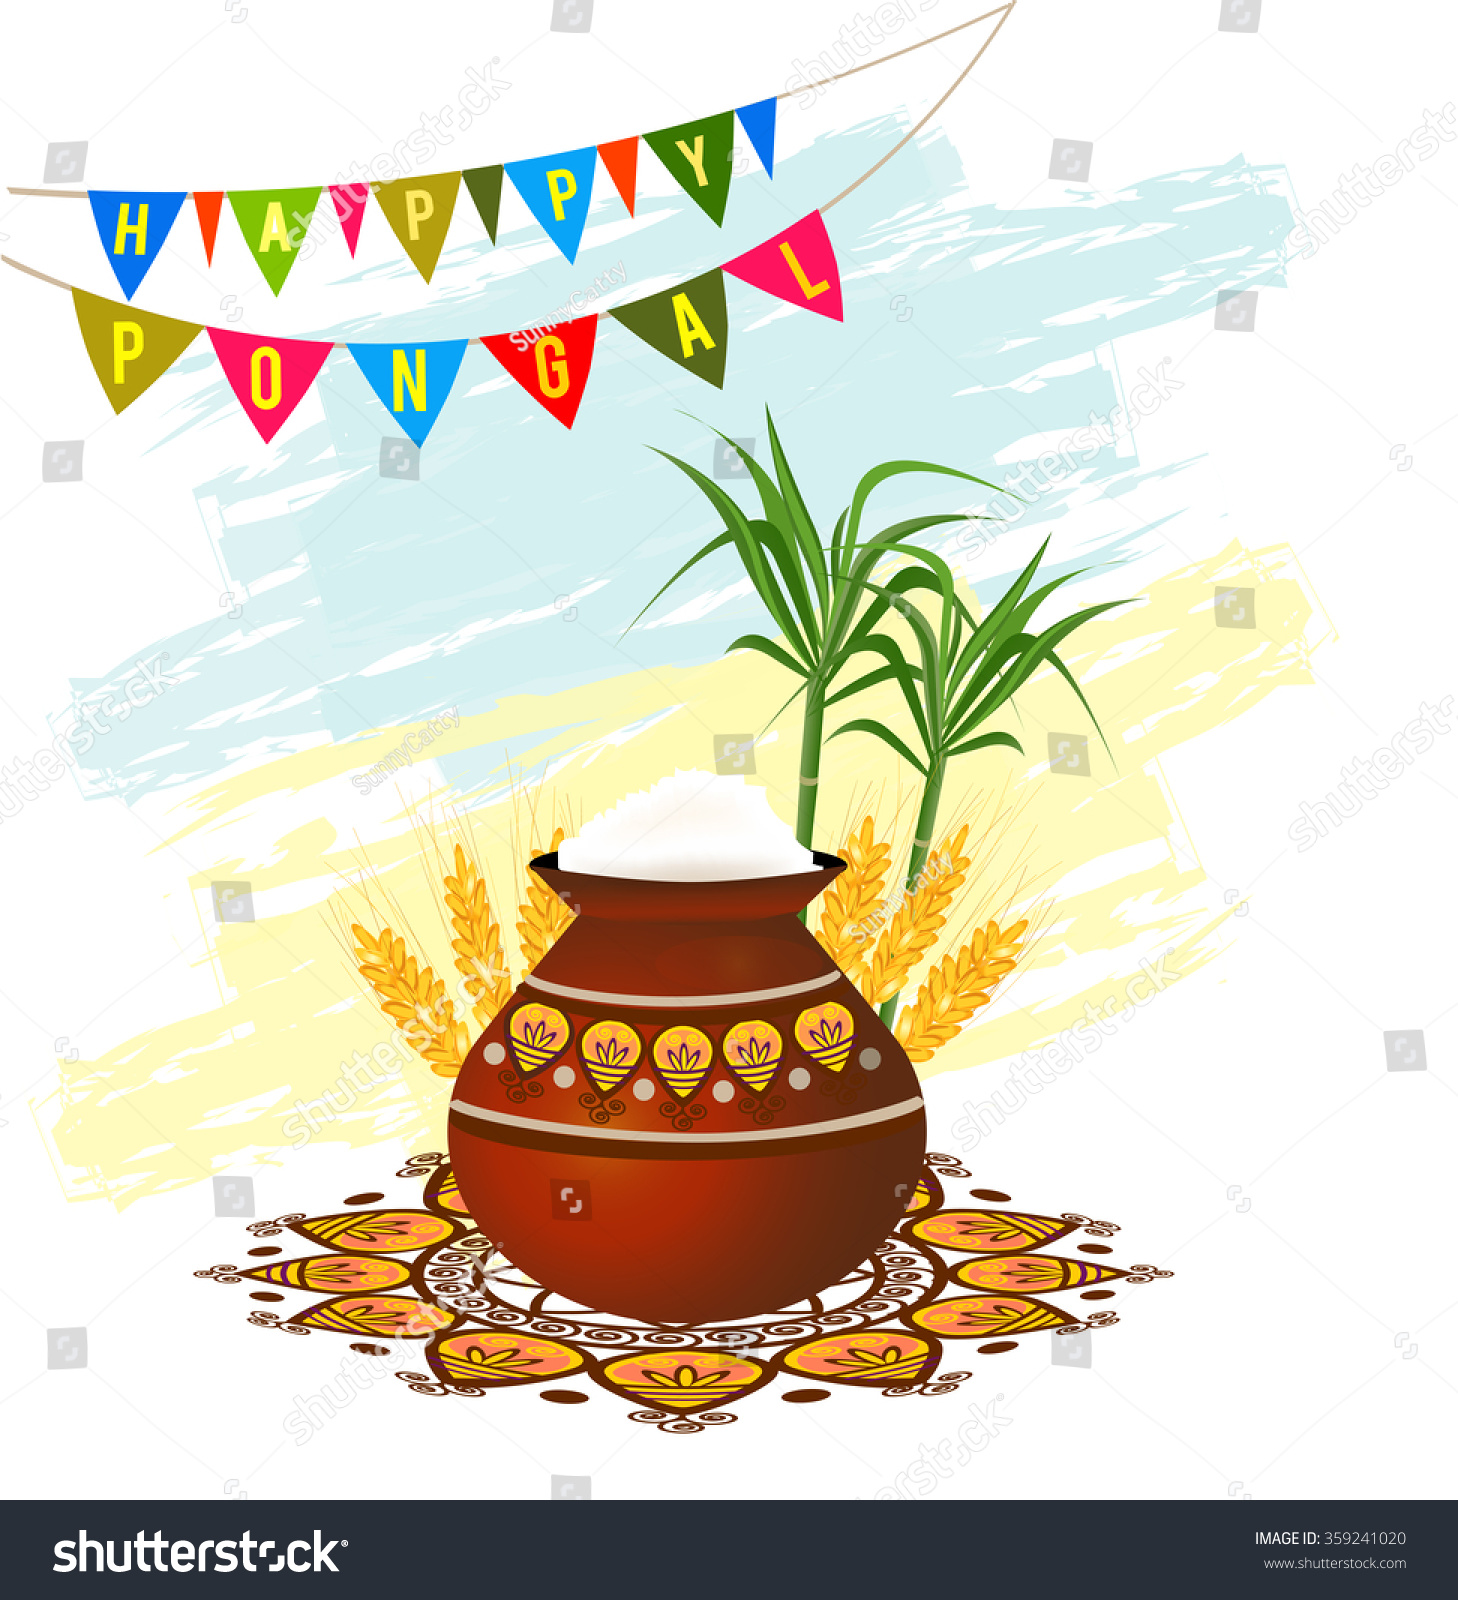 Happy Pongal South Indian Harvesting Festival Stock Vector Royalty